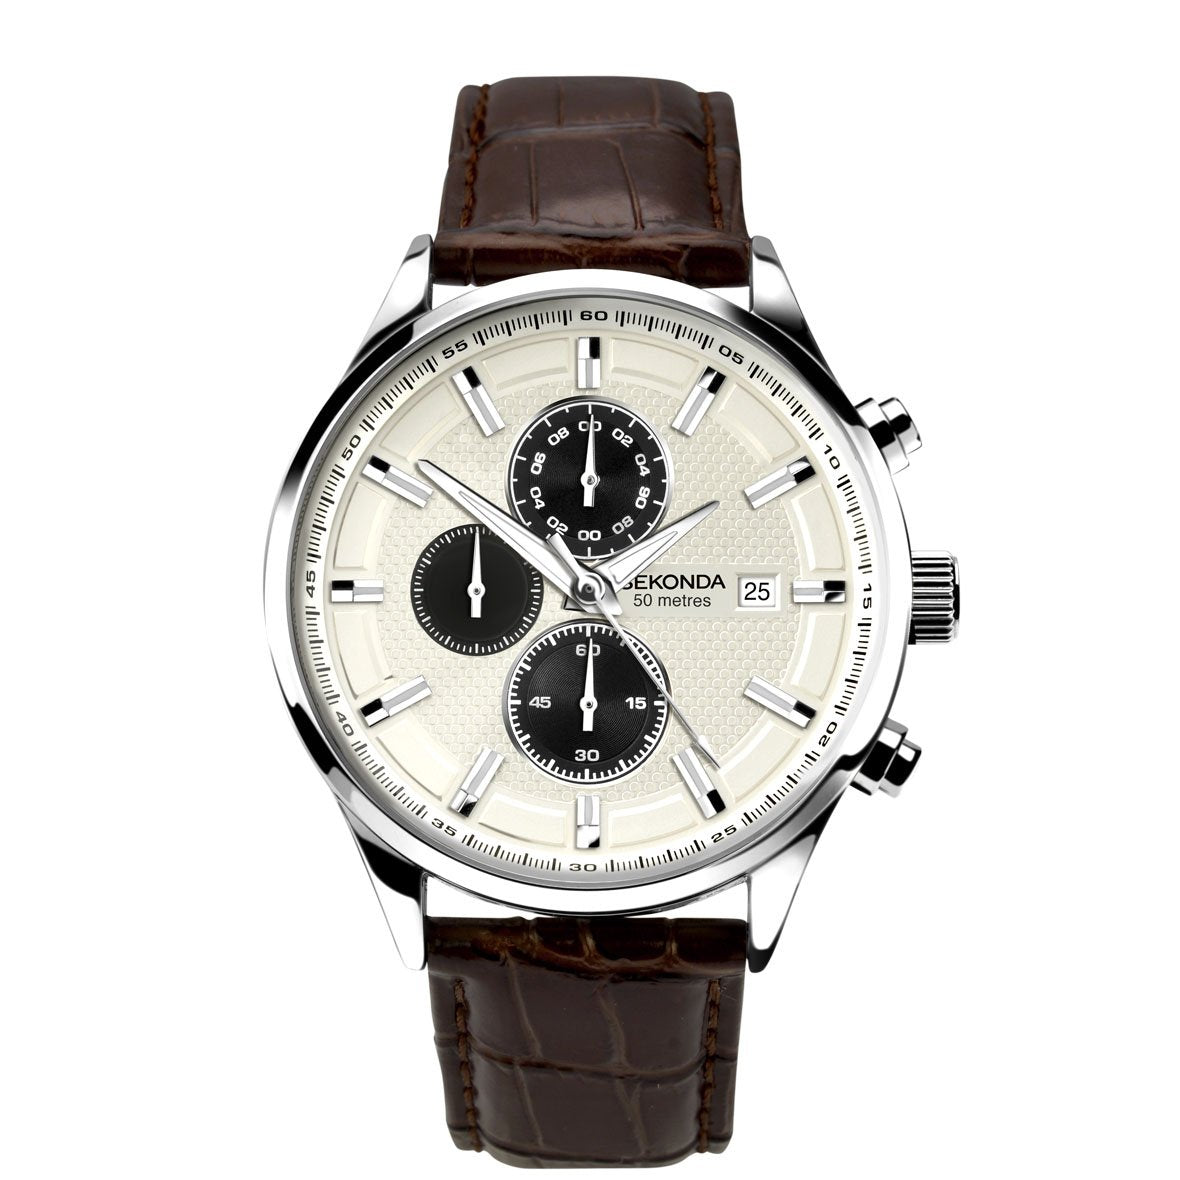 Sekonda Men's Leather Strap Chronograph Watch - Red Carpet Jewellers